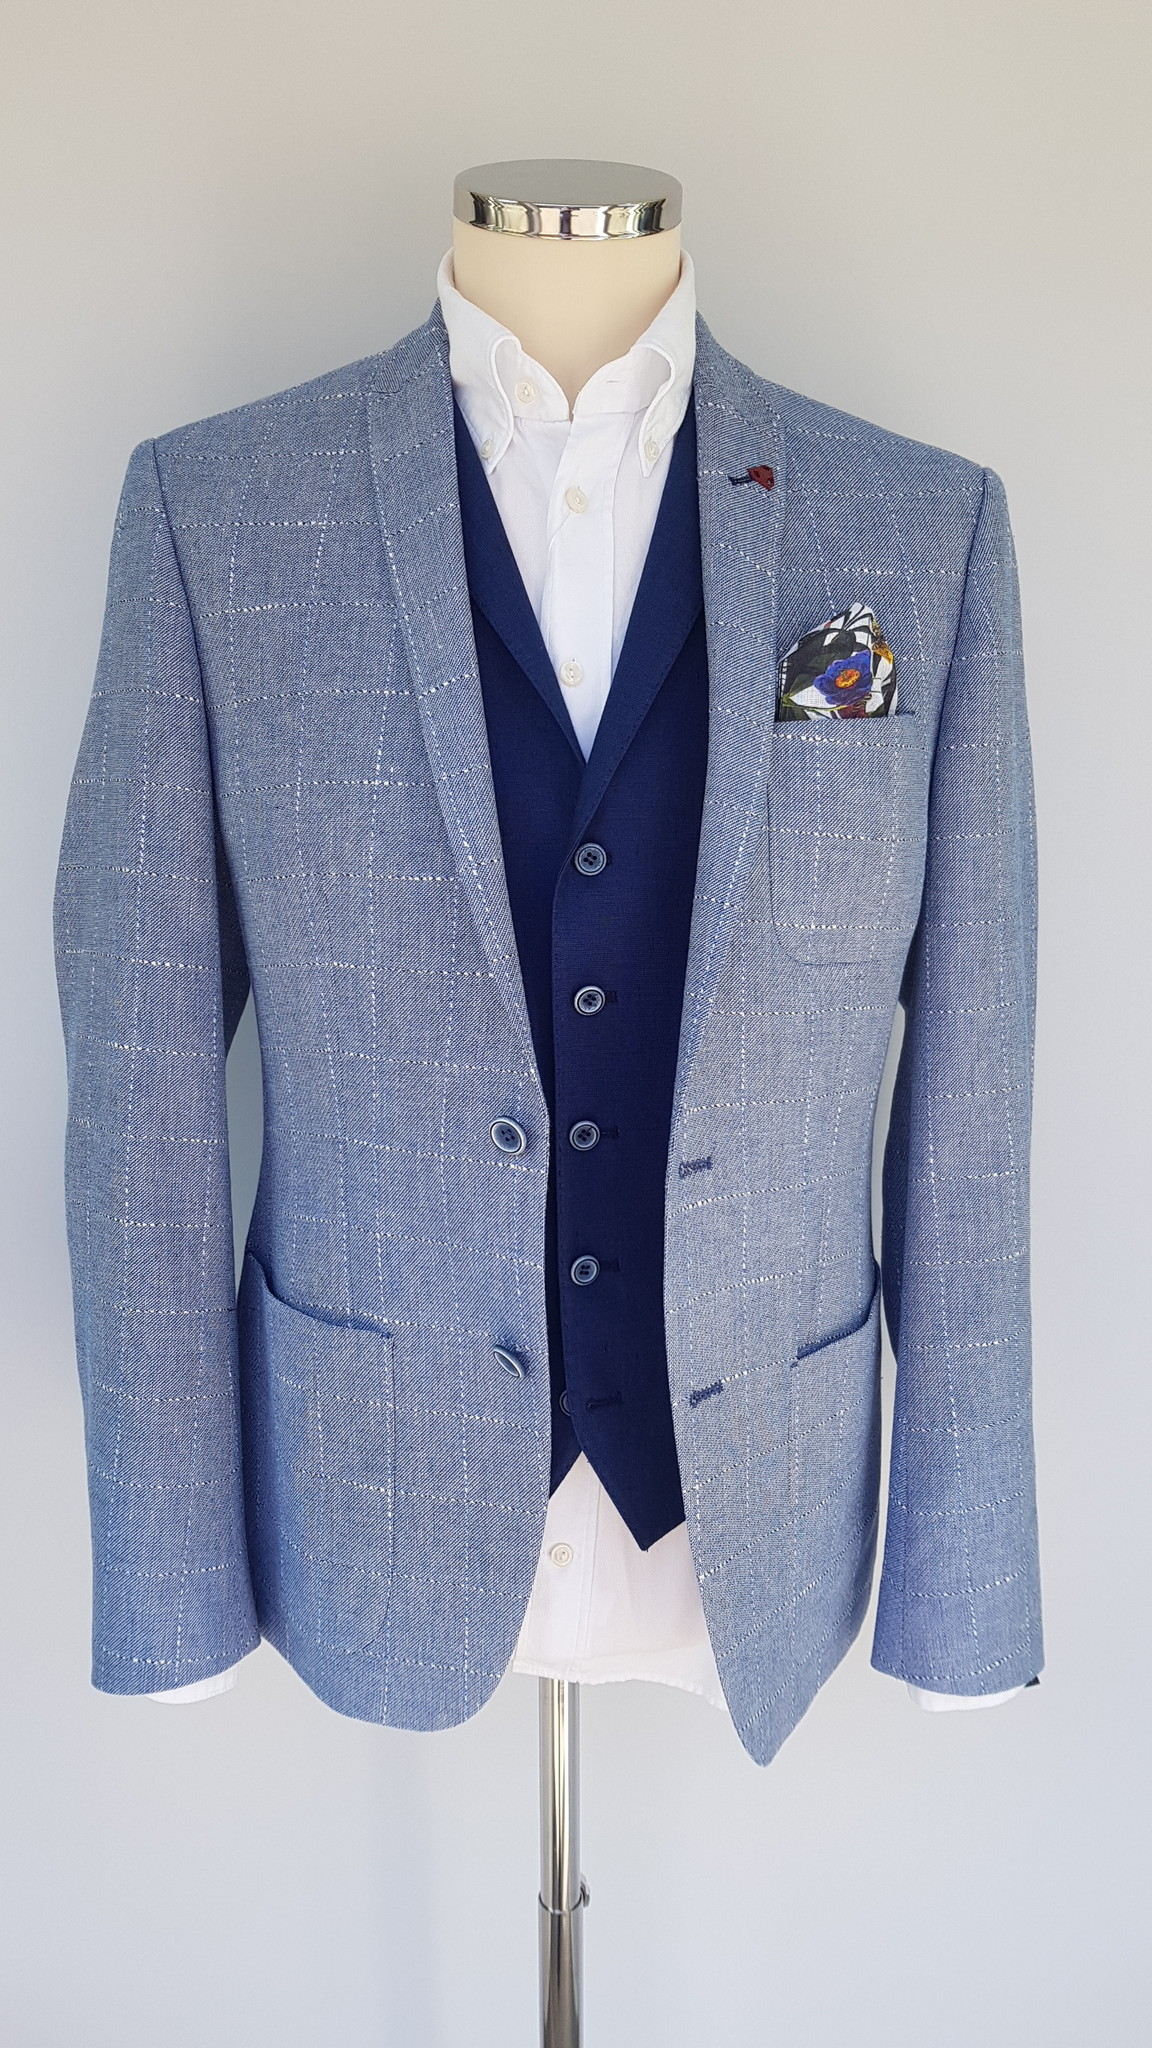 Roy Robson Slim Fit Cotton/Linen patch pocket Jacket